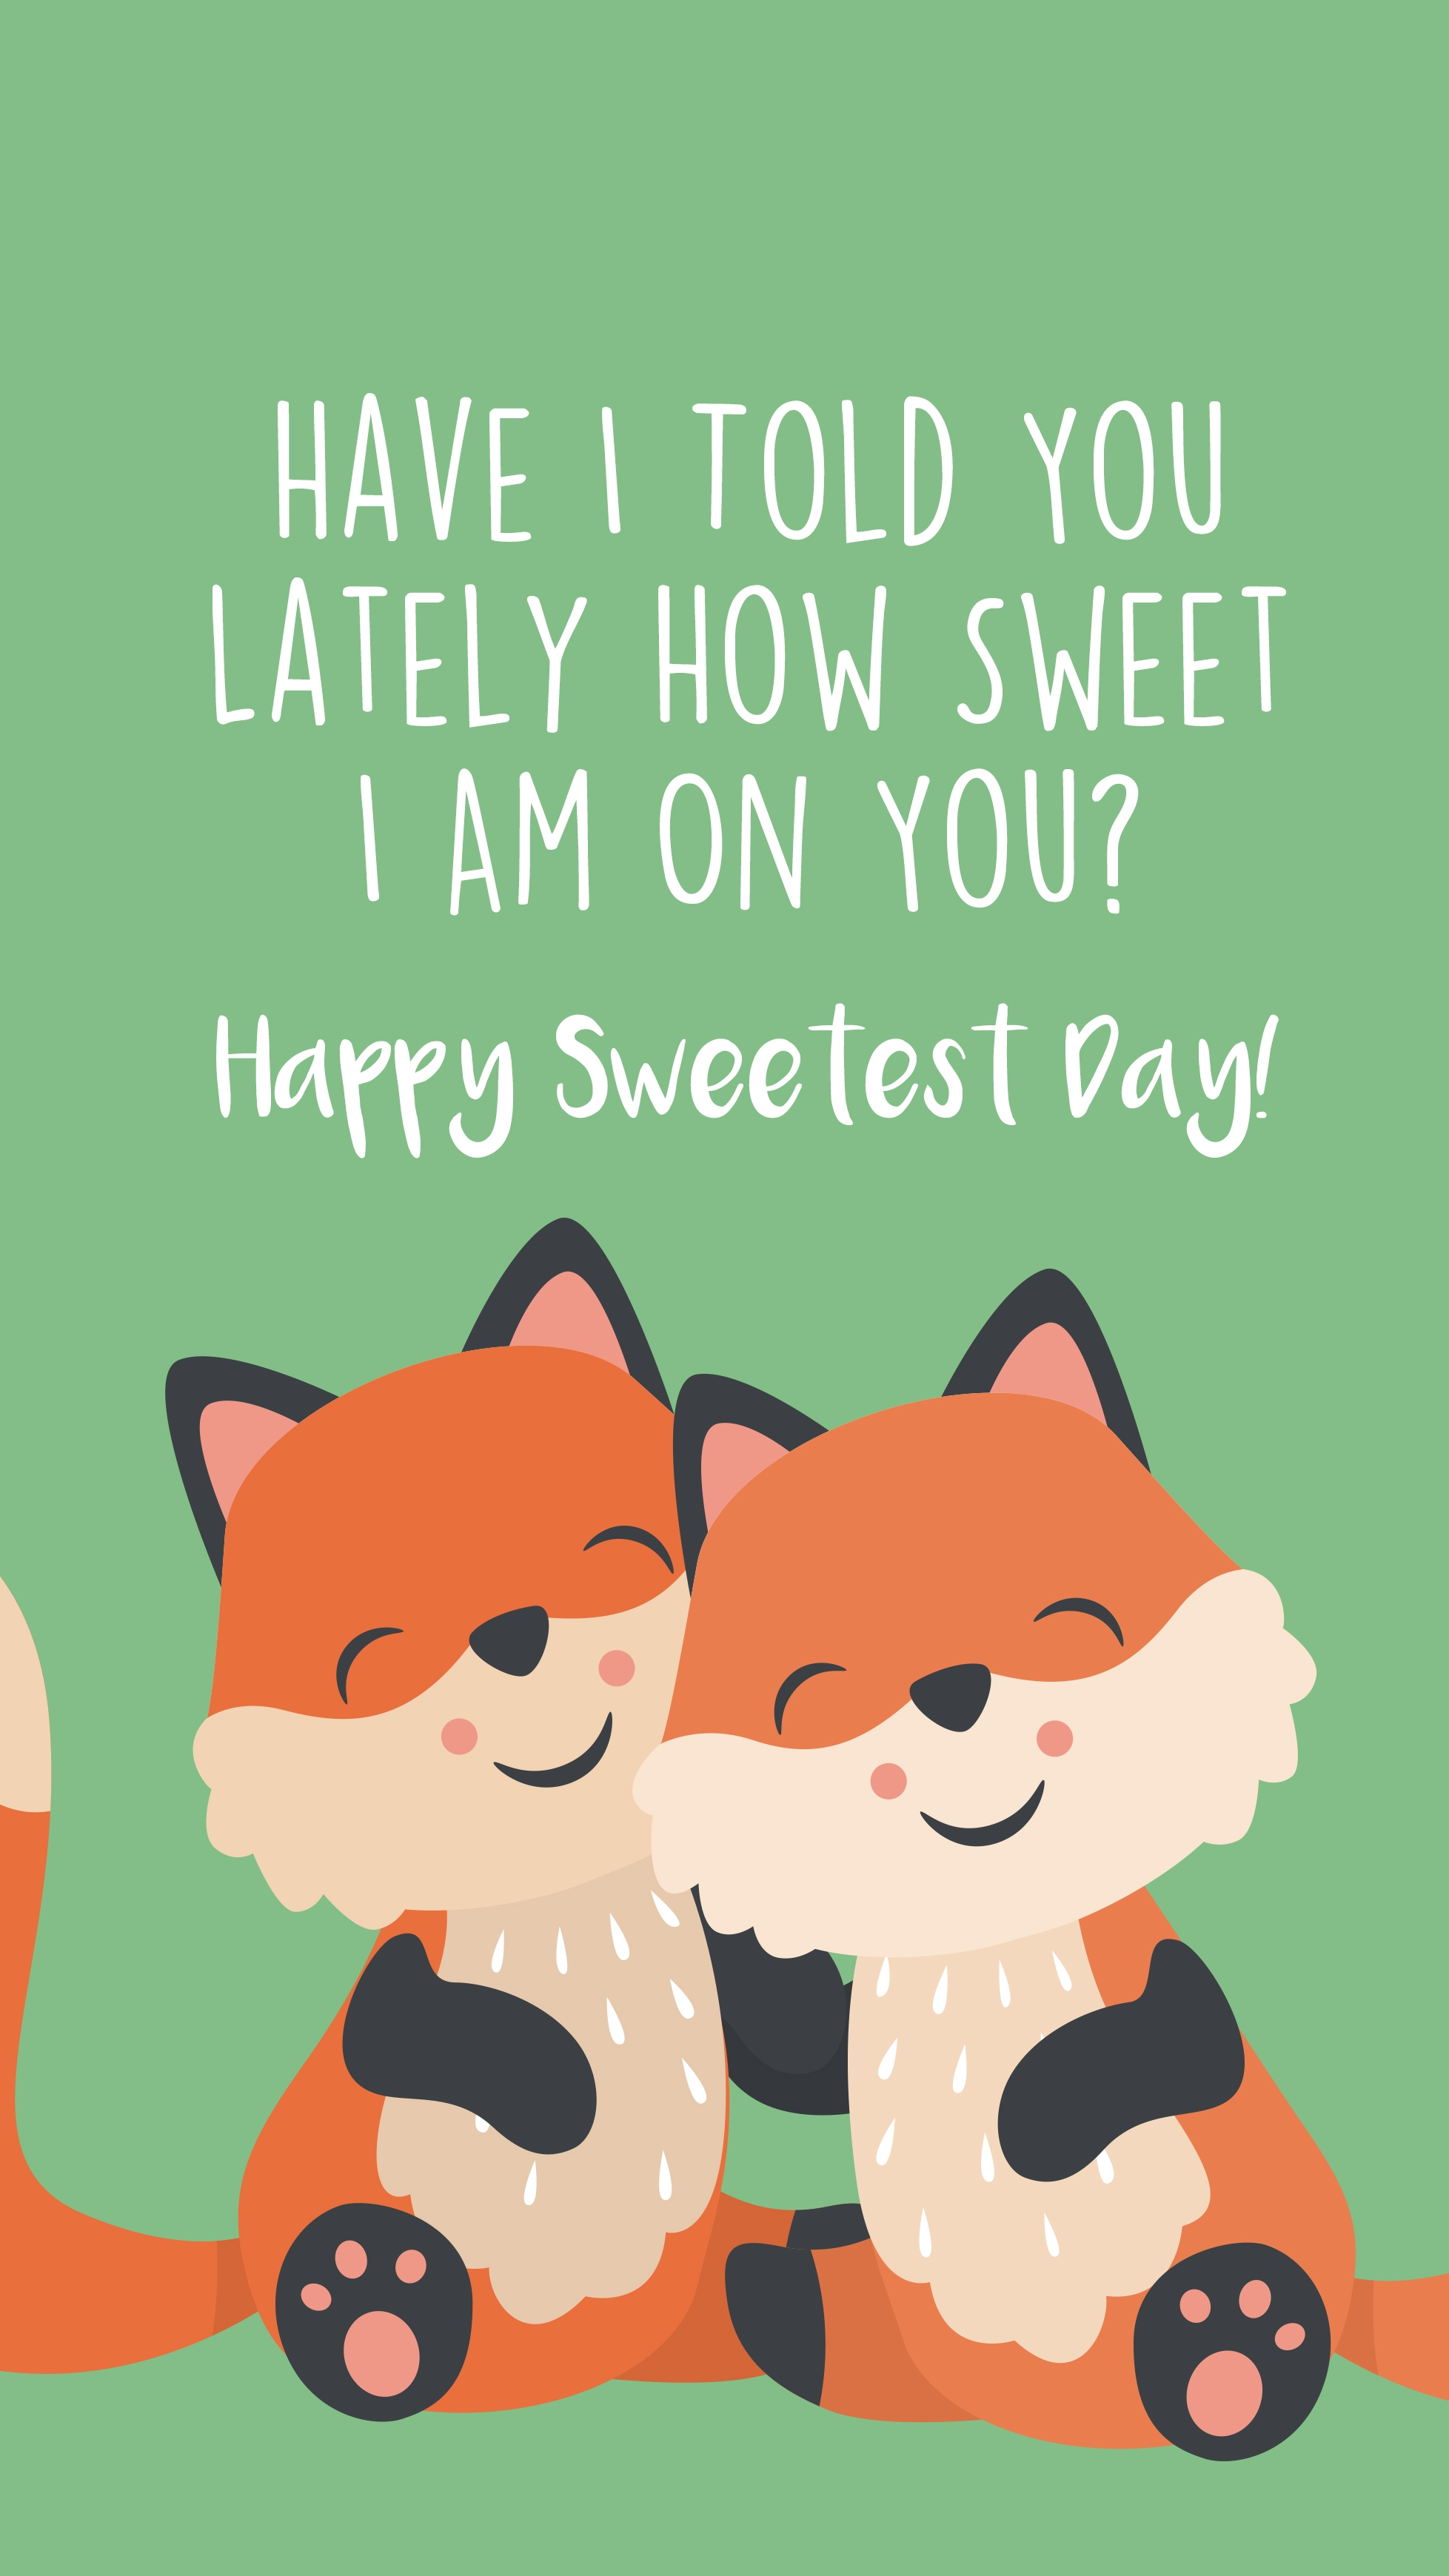 Sweetest Day 3